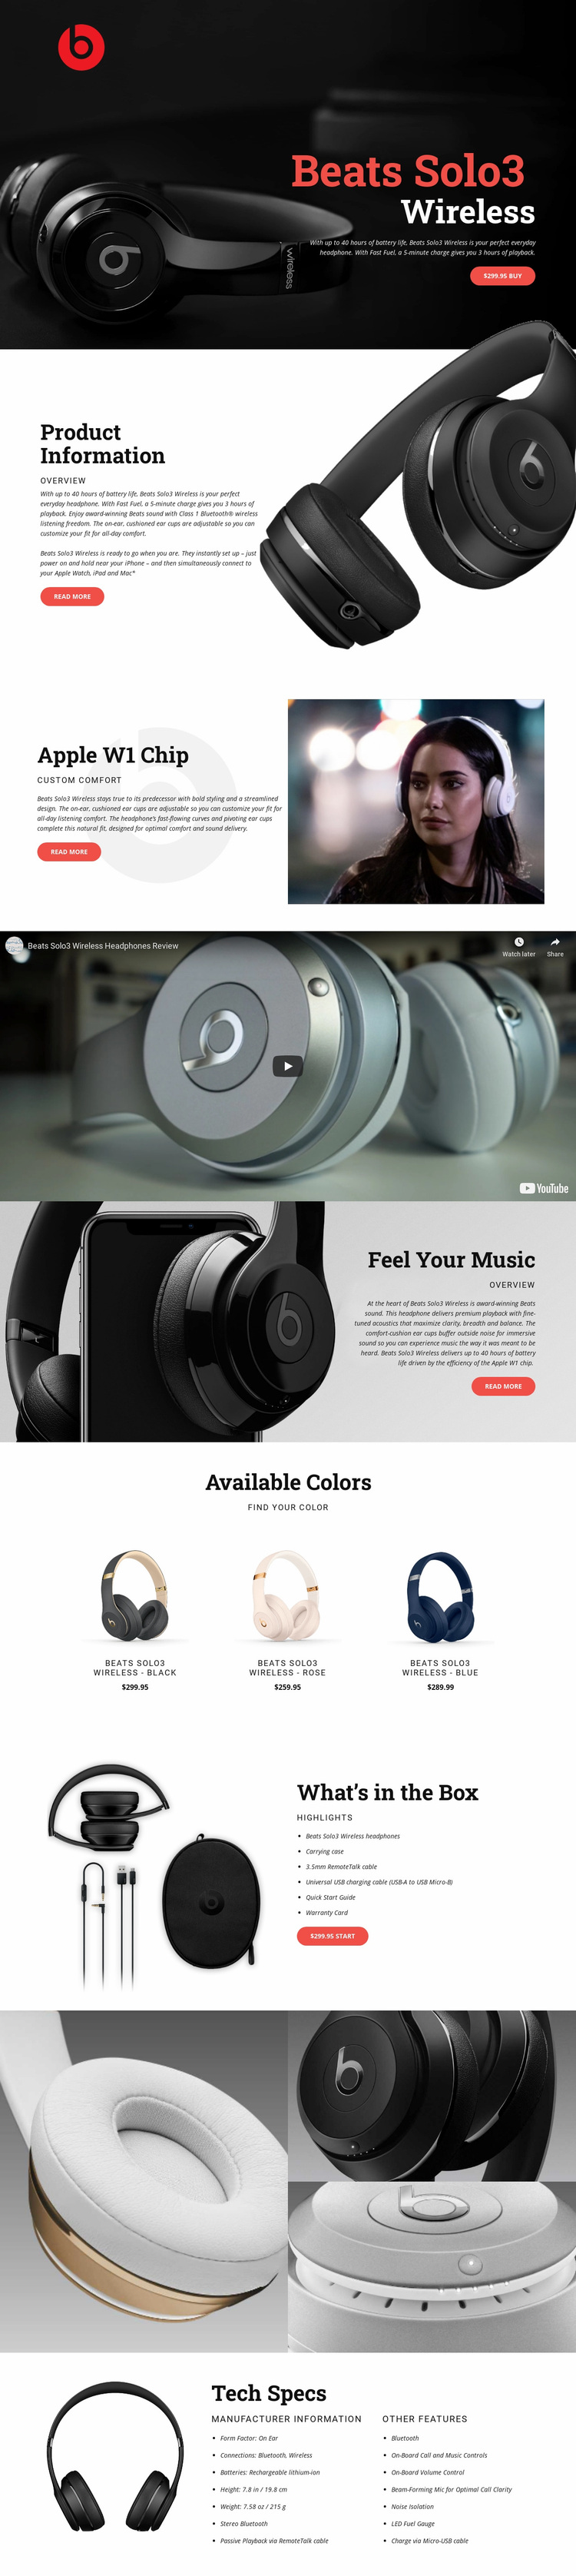 Outstanding quality of music Web Page Designer